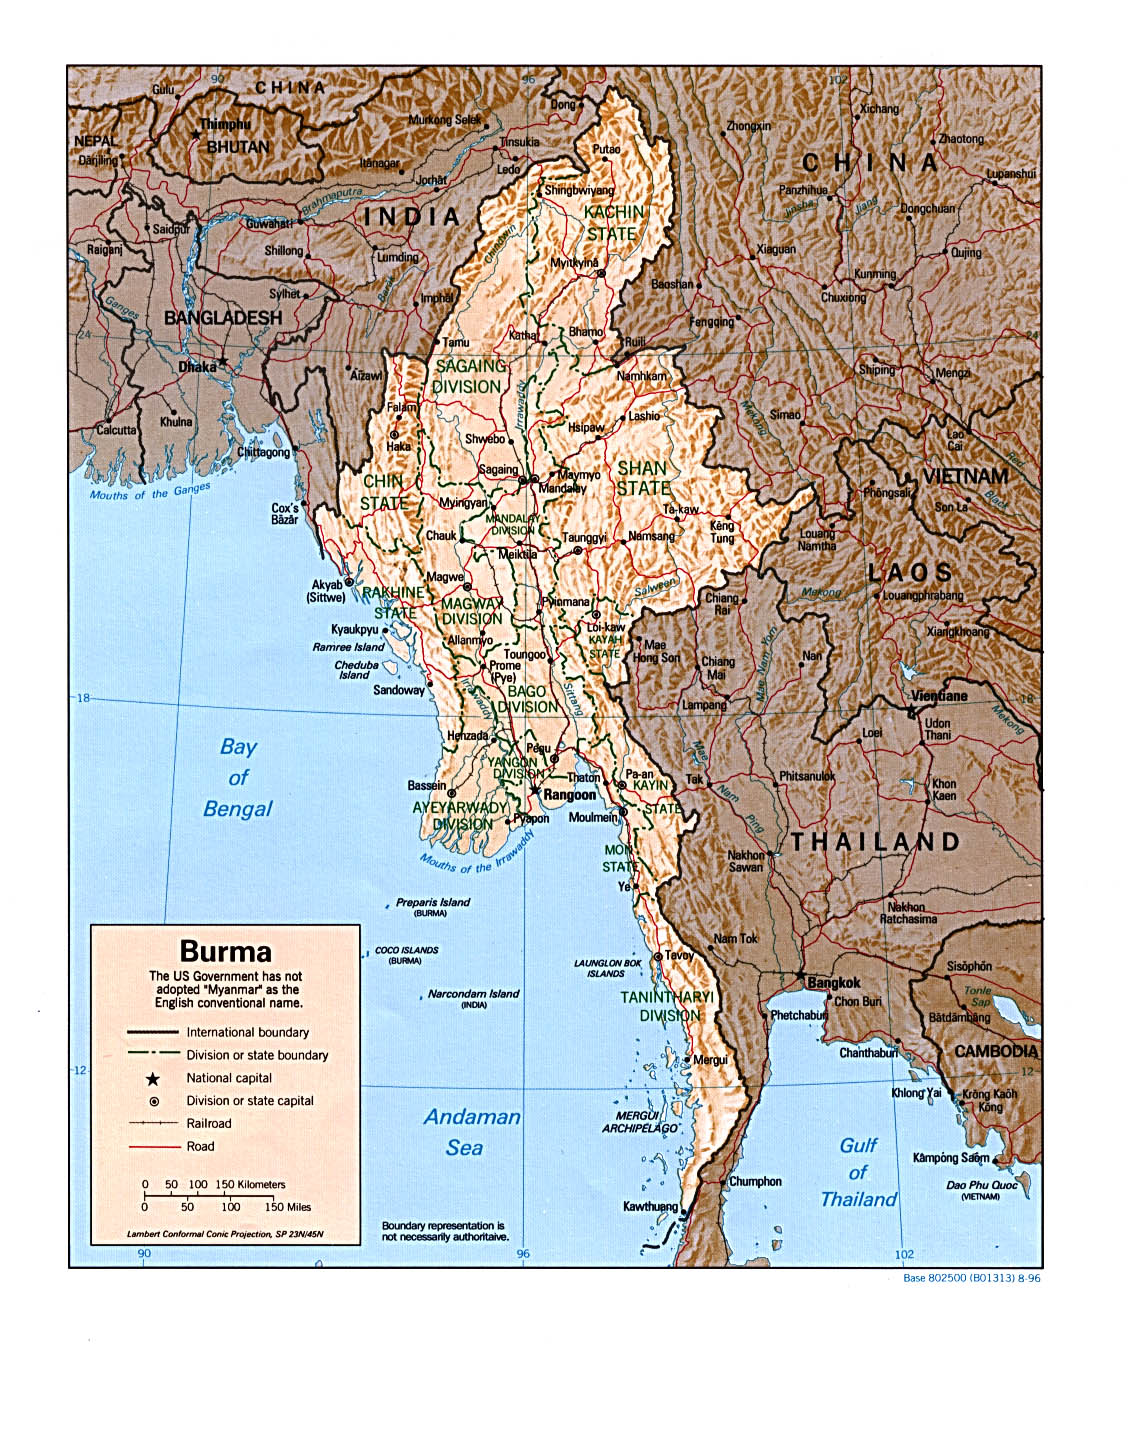 Mapa de Relieve Sombreado de Birmania (Myanmar)